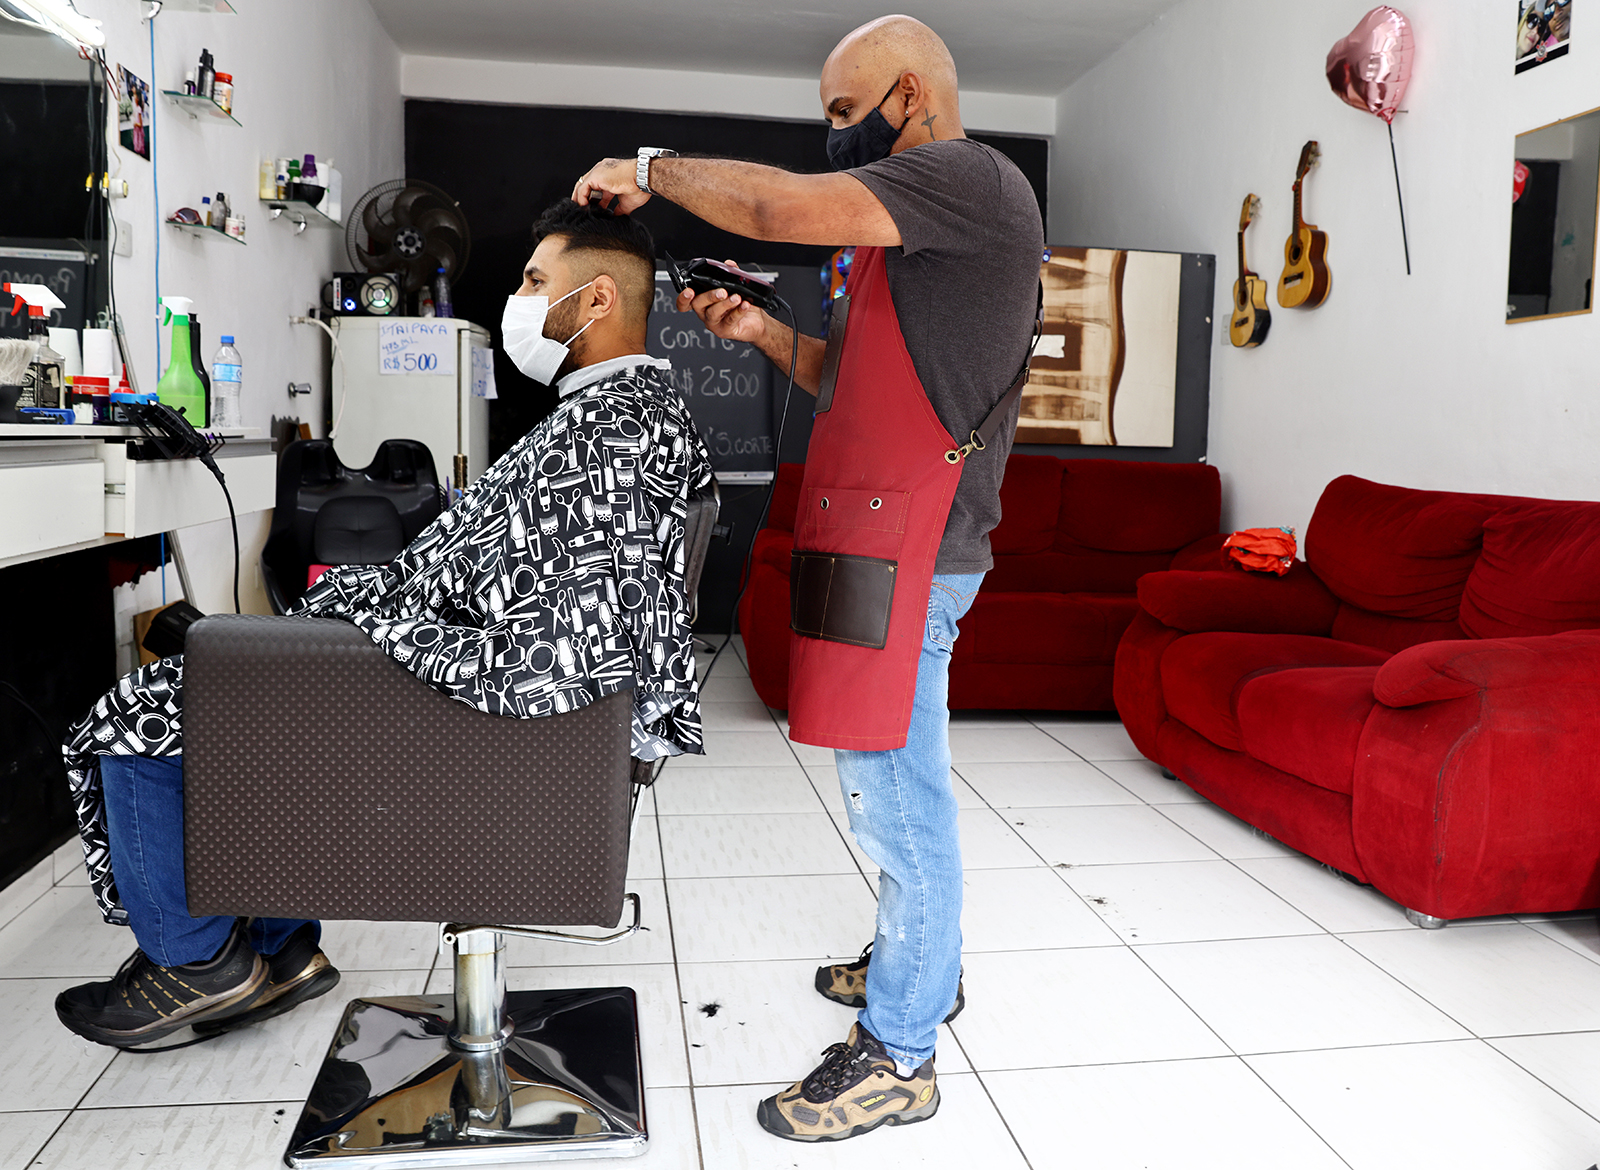 A barber cuts the hair of a client in his barbershop in the Brasilandia neighborhood amid the pandemic on May 15, in Sao Paulo, Brazil.